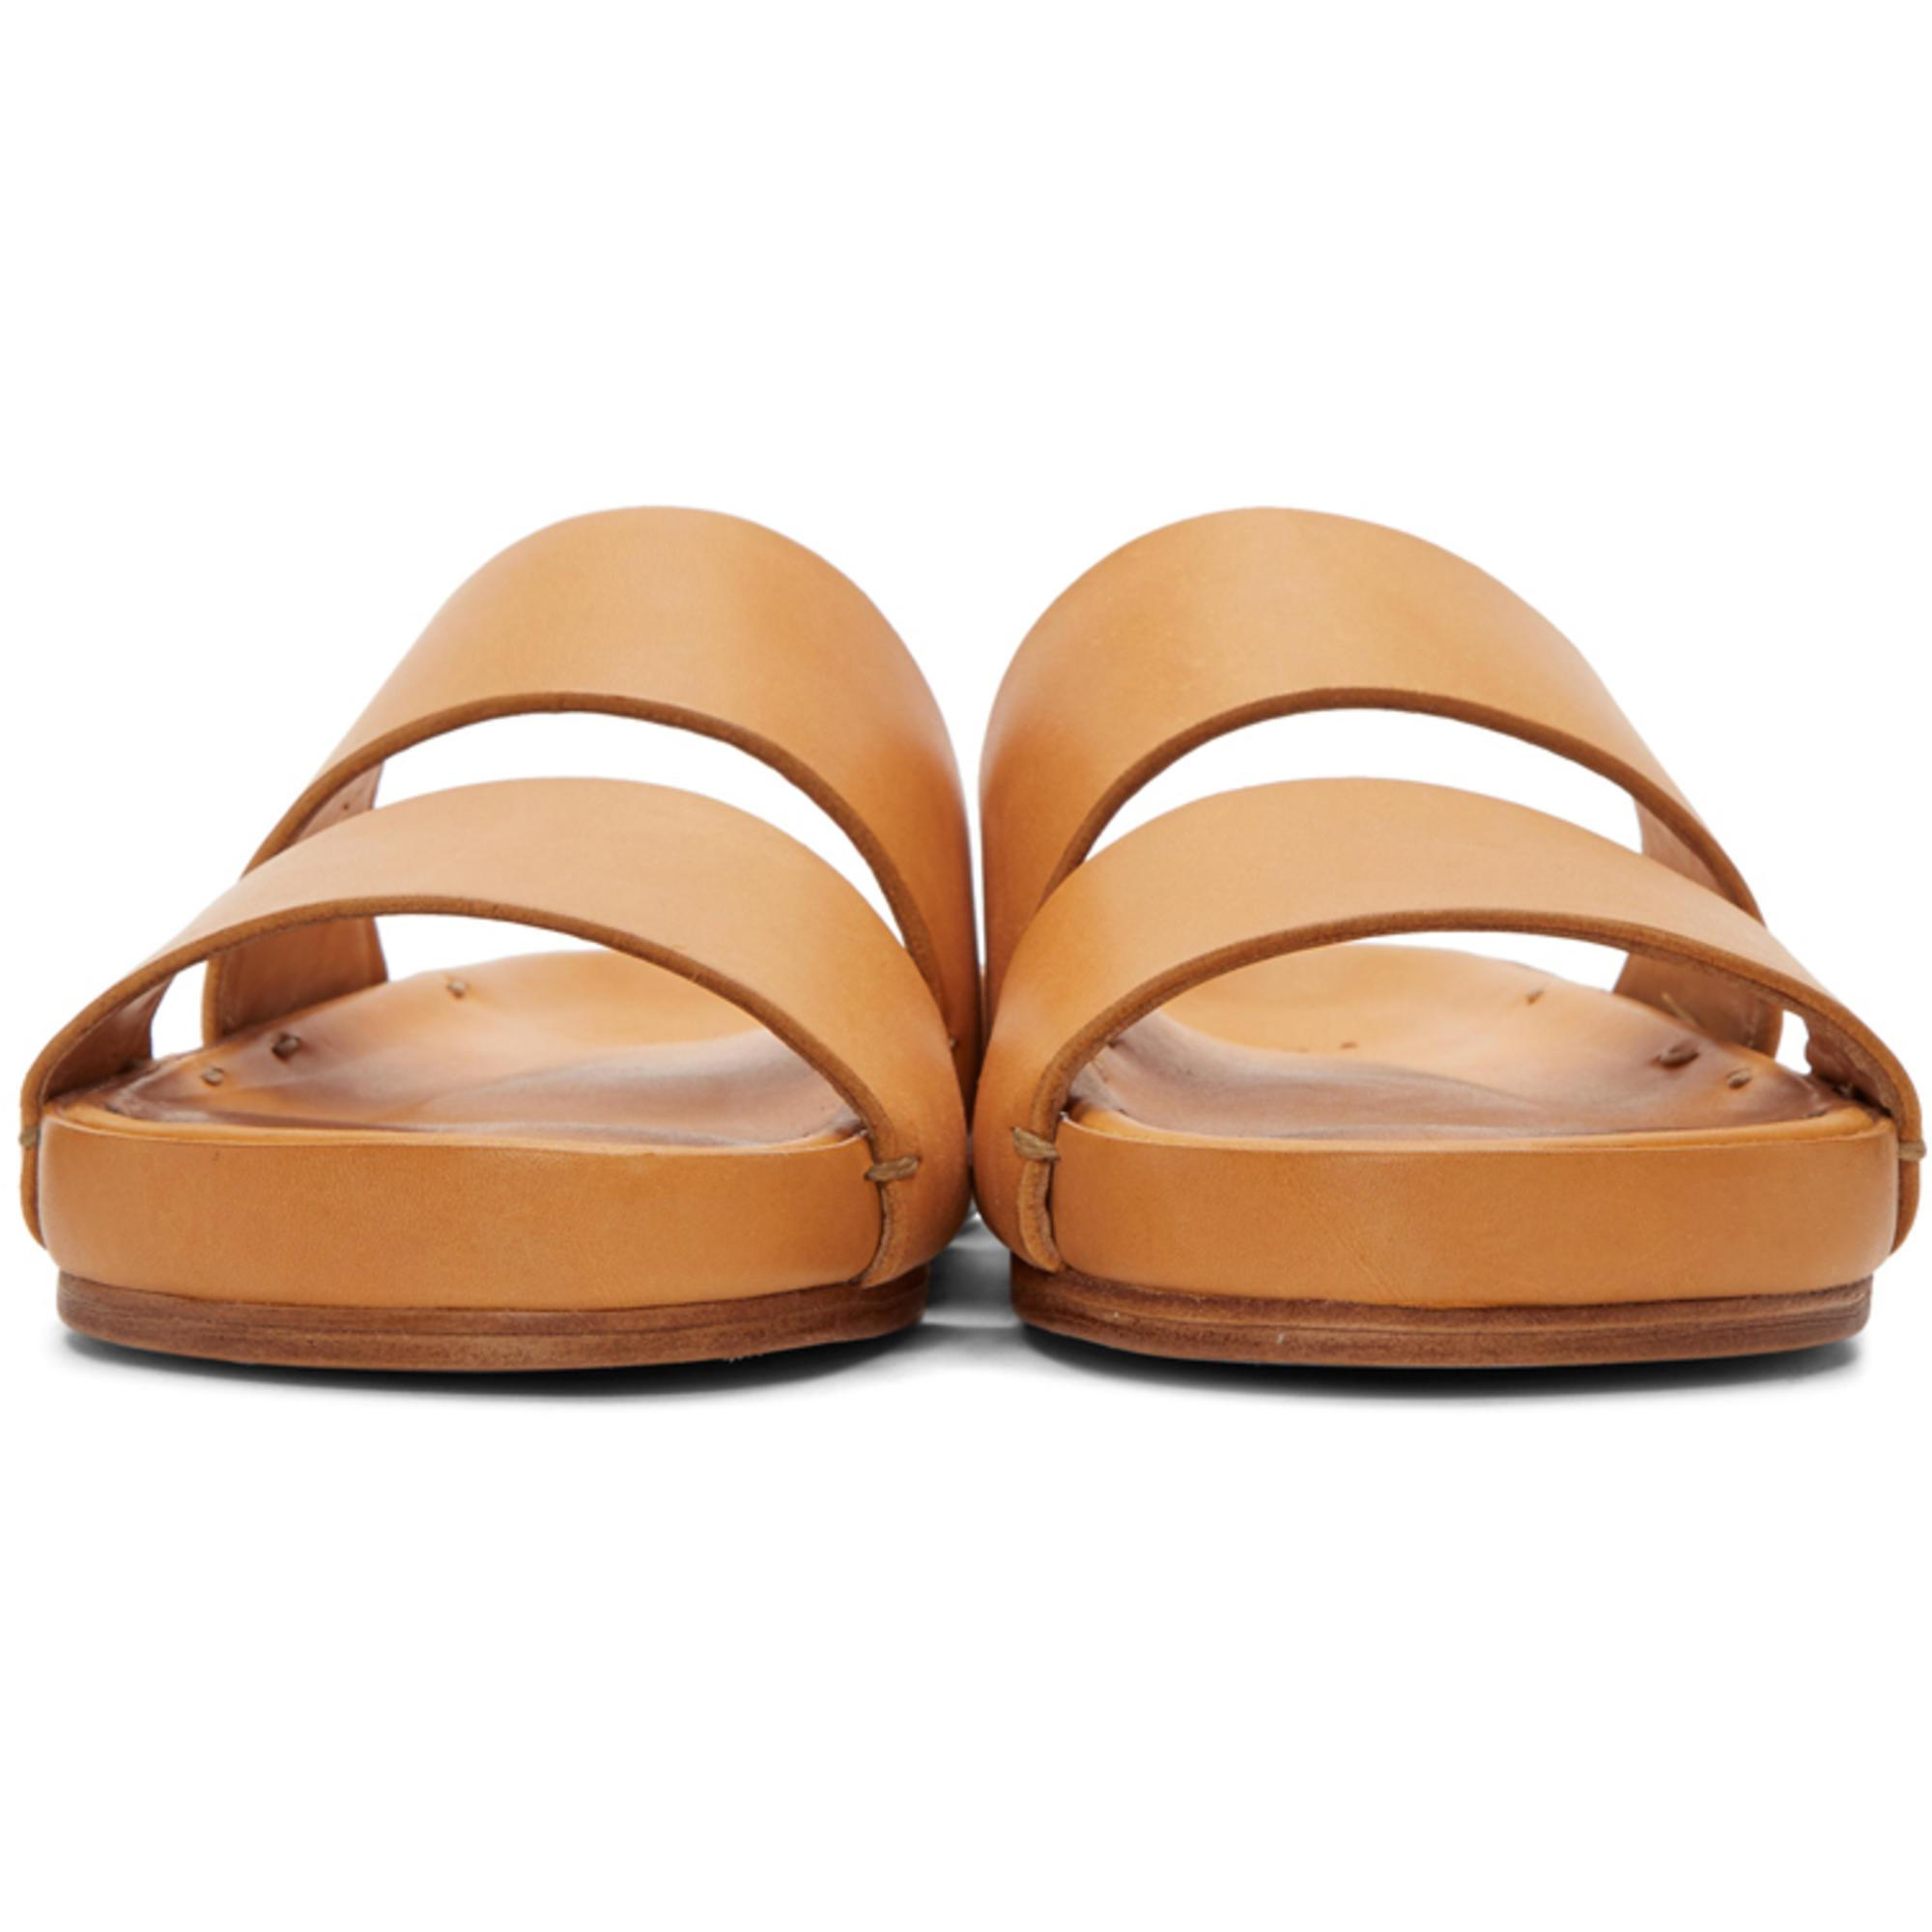 6663b2748026 Lyst - Feit Tan Two-strap Sandals in Brown for Men